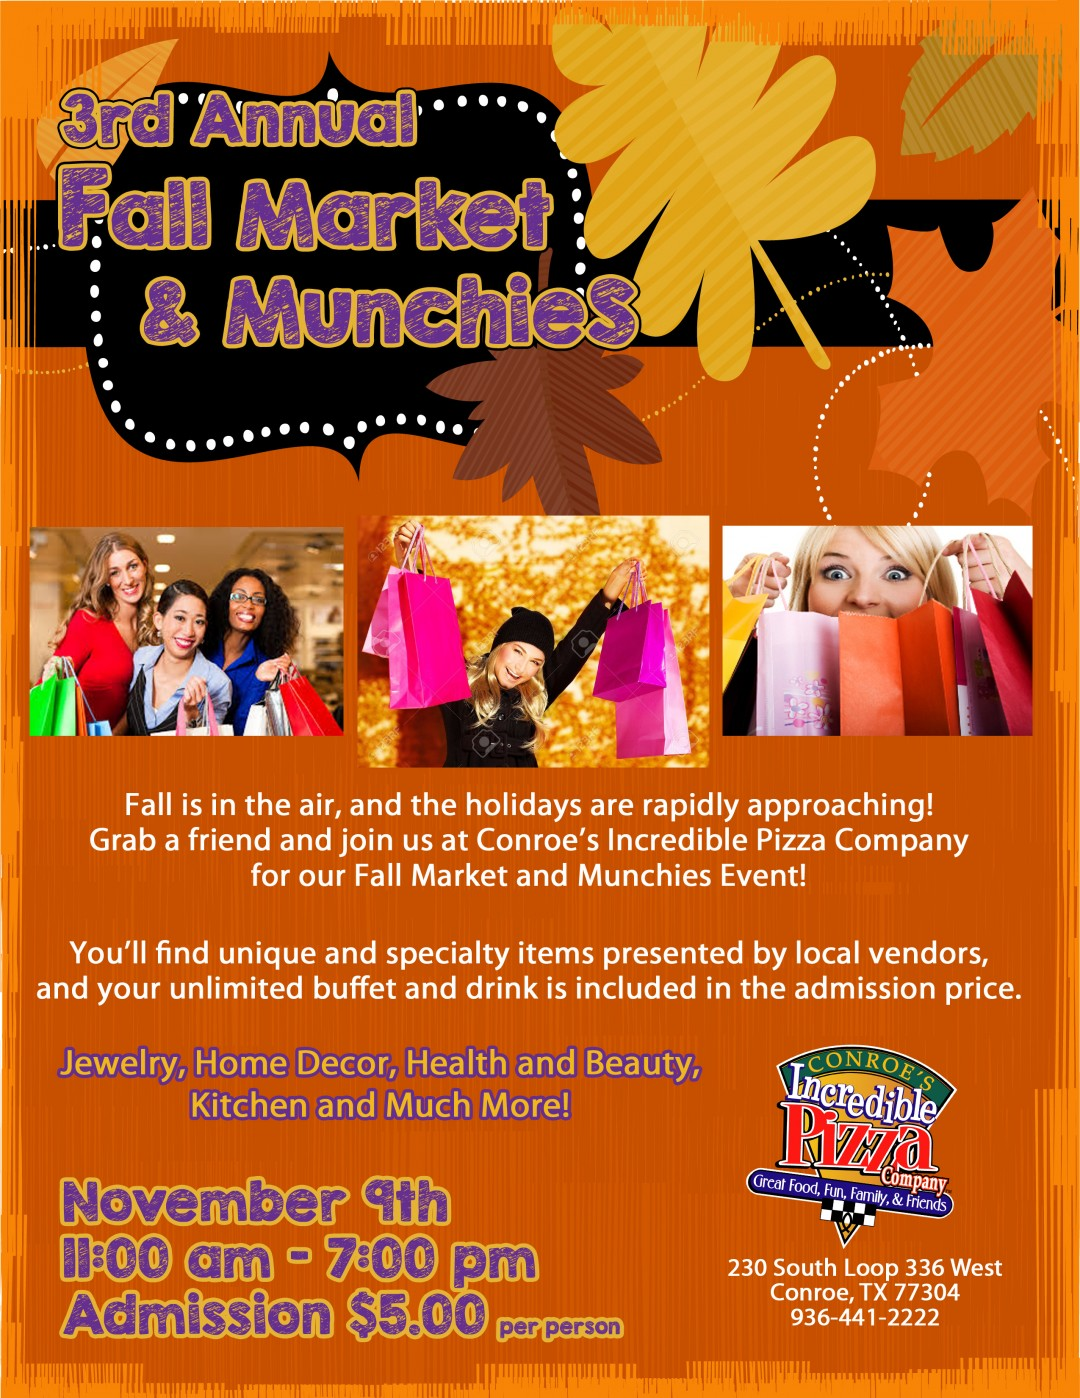 3rd Annual Fall Market & Munchies – Nov. 9